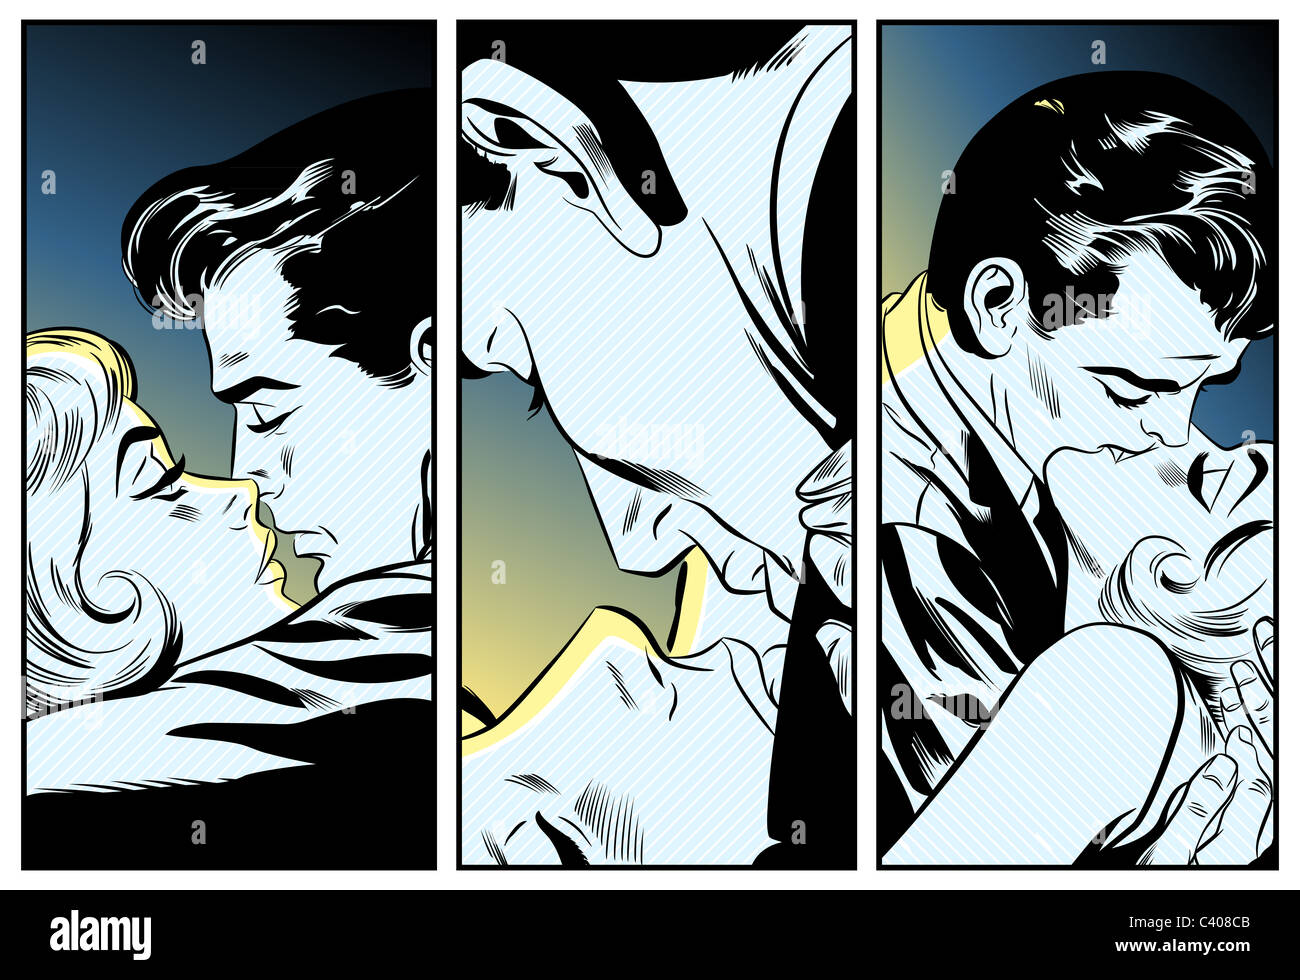 Une bande dessinée retro illustration de trois couples kissing Photo Stock